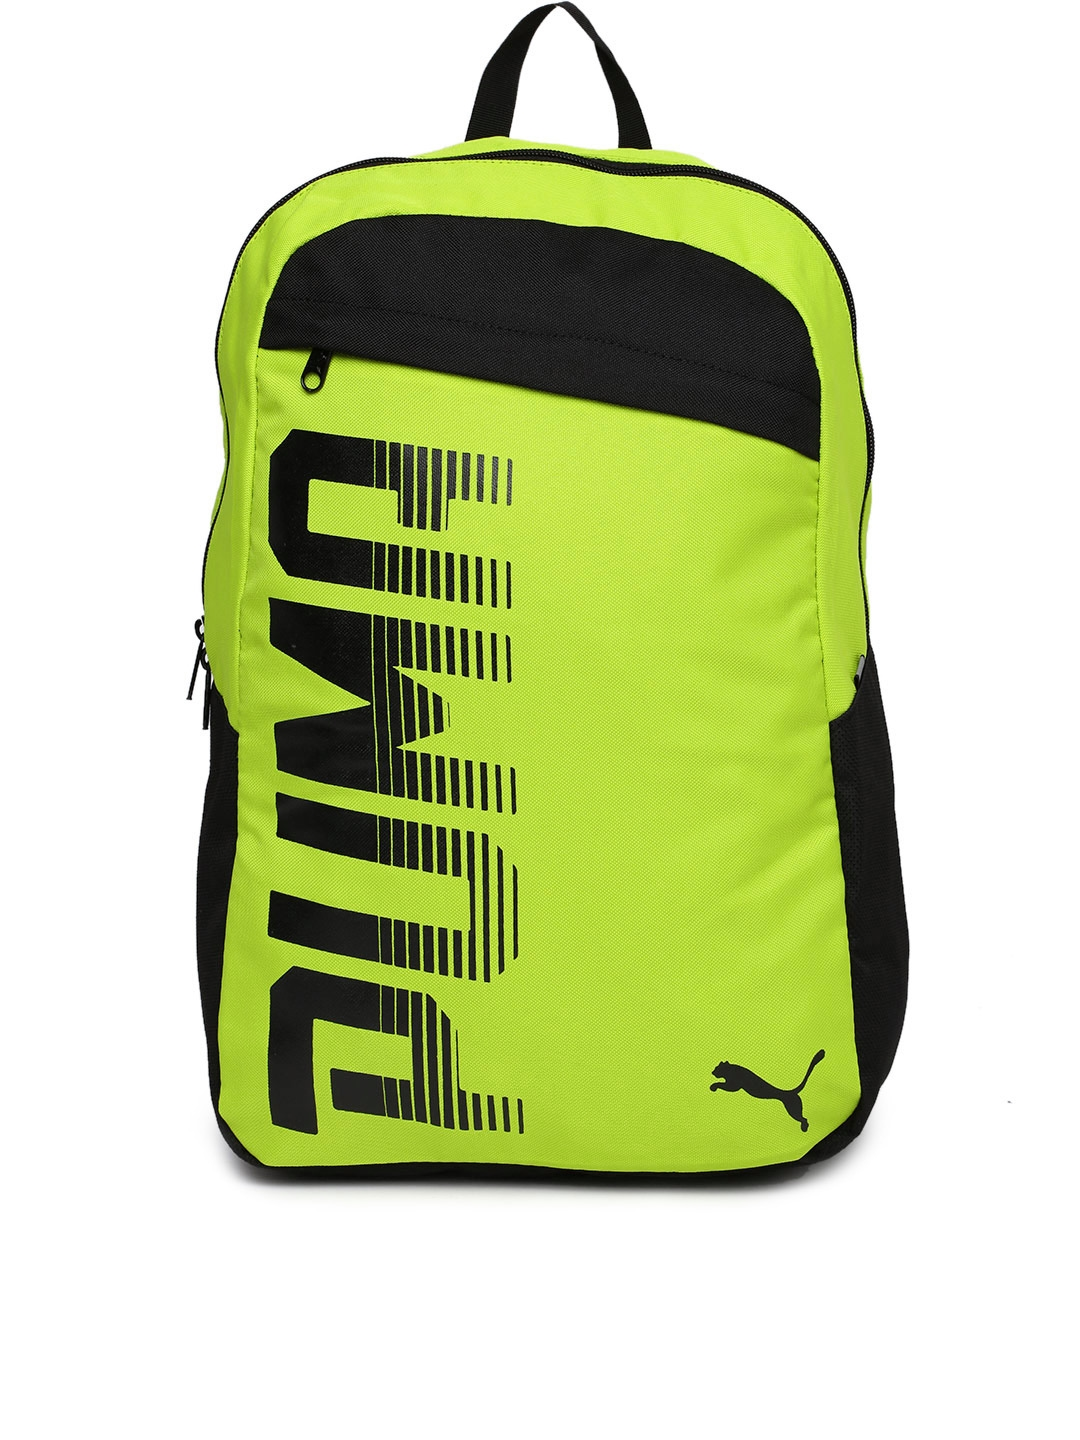 99beb0fa7e Buy Puma Unisex Fluorescent Green Pioneer Backpack - Backpacks for ...